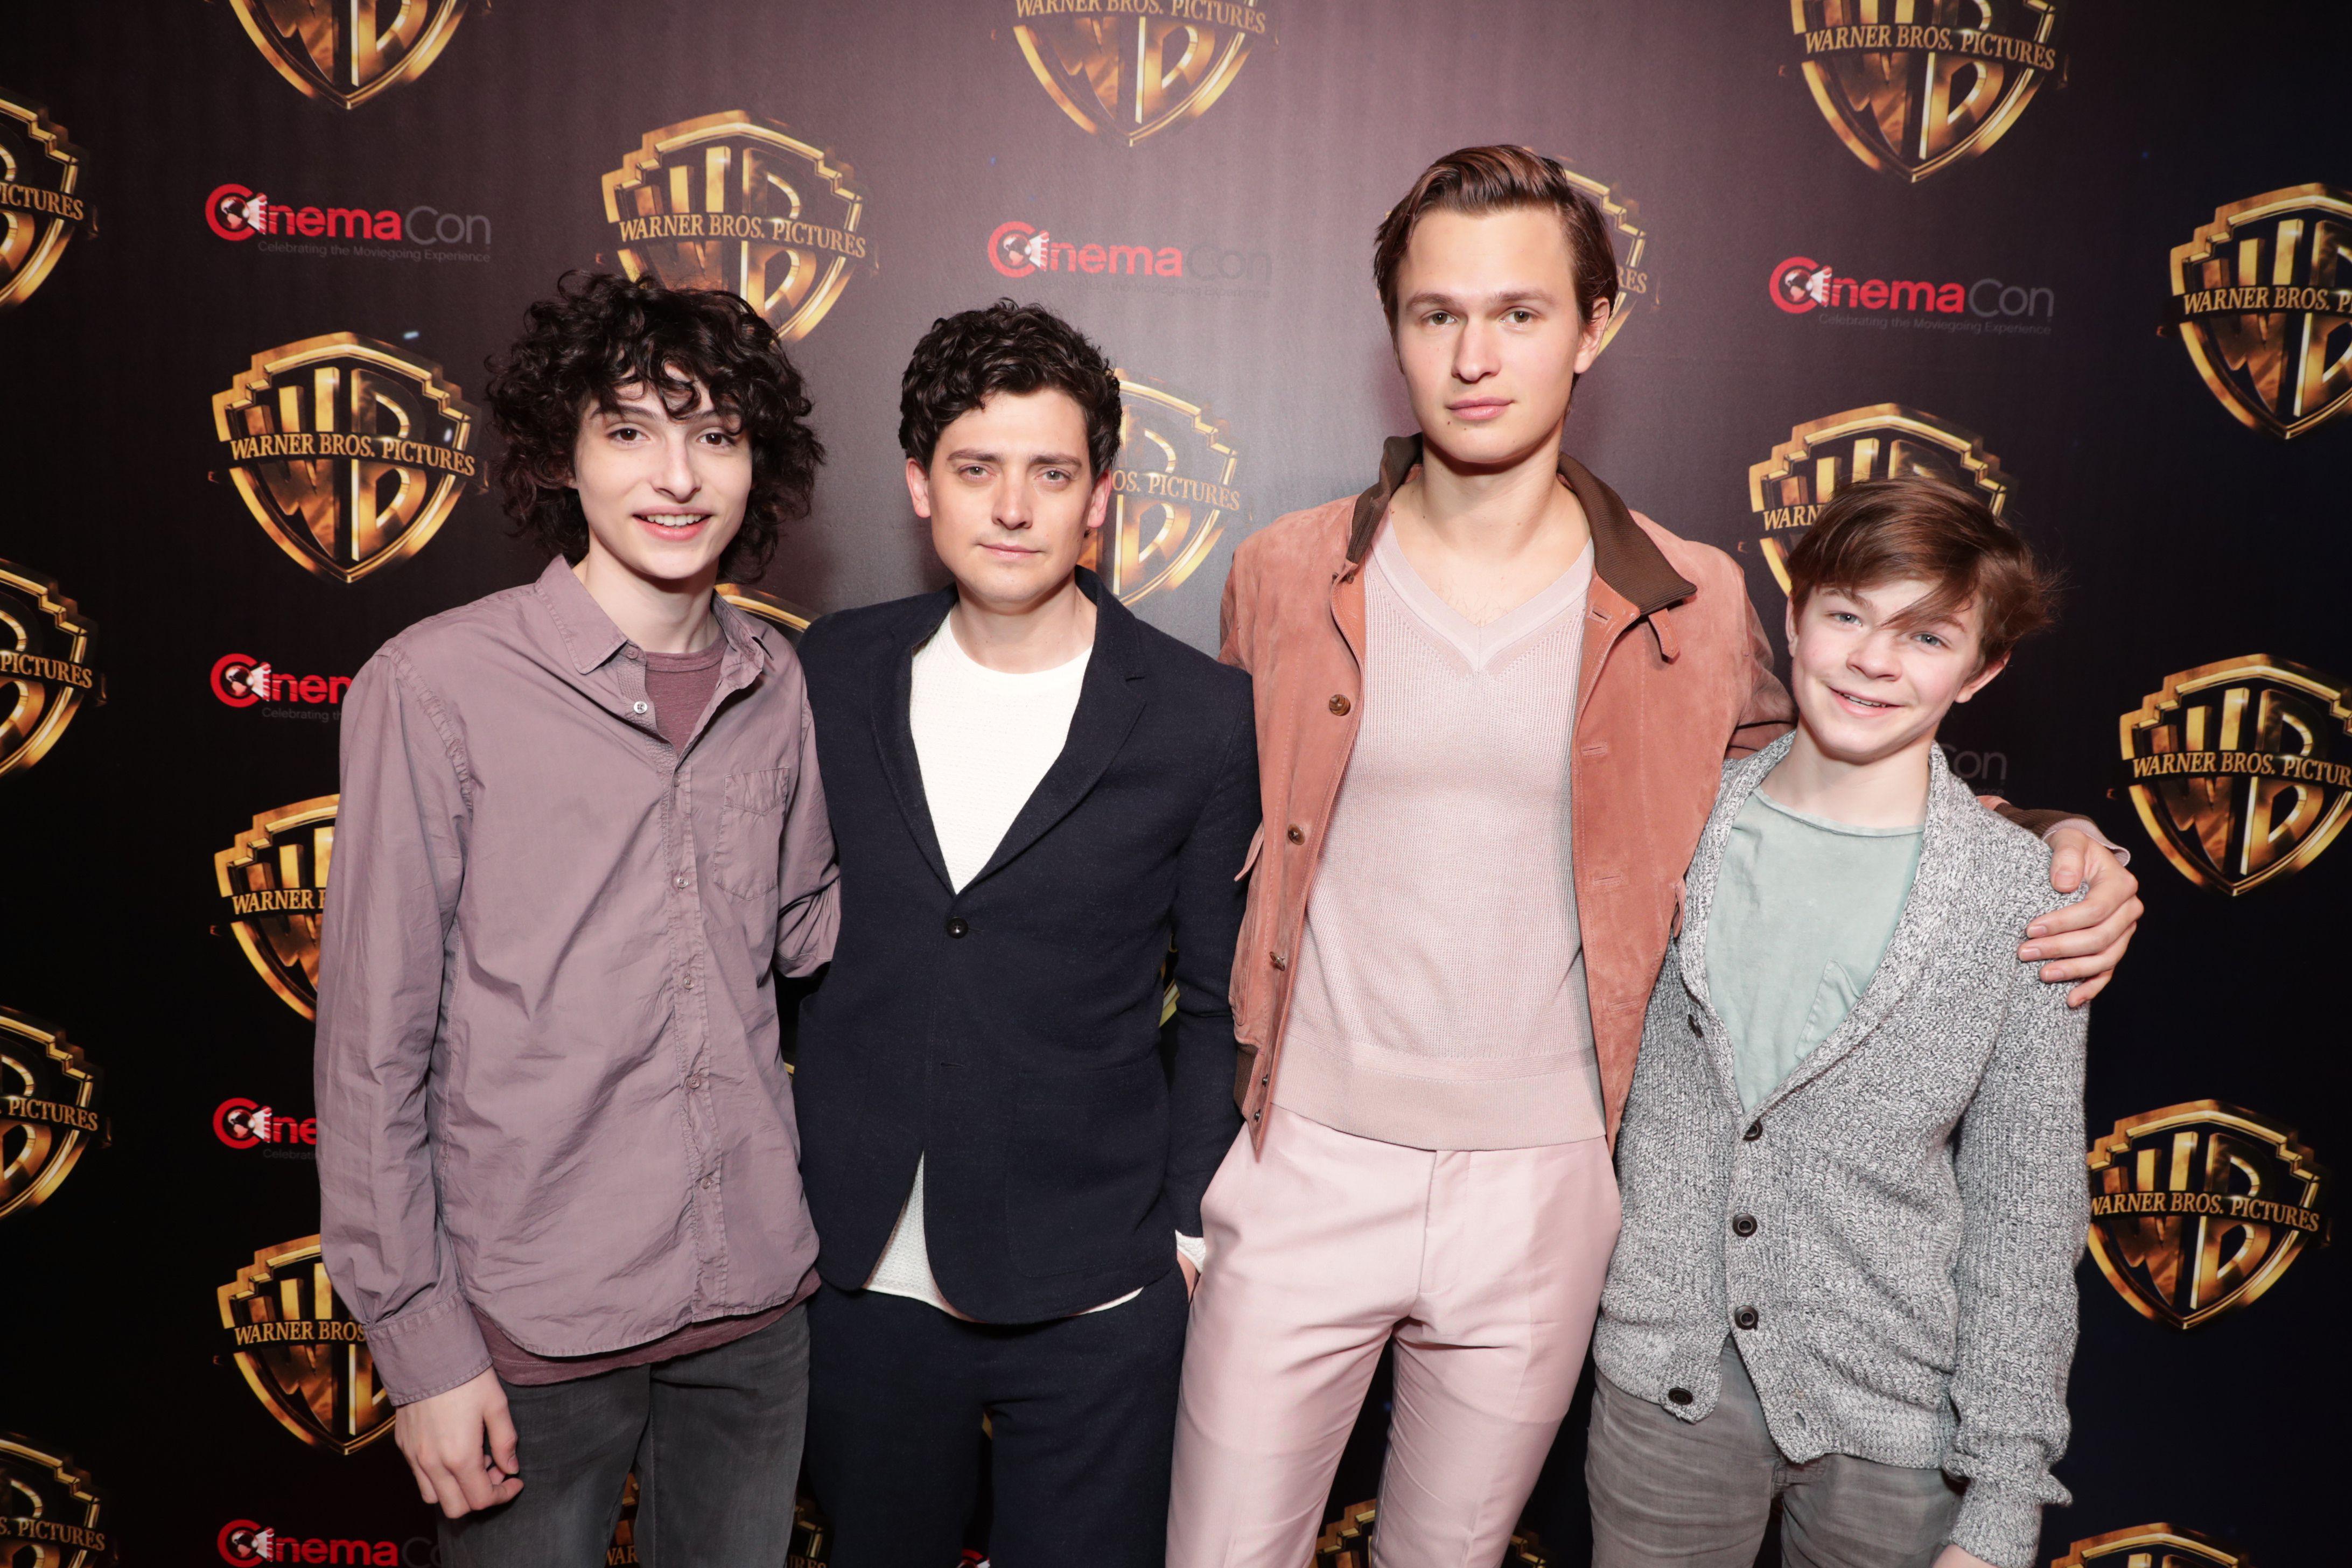 Finn Wolfhard, Aneurin Barnard, Ansel Elgort, Oakes FegleyWarner Bros. The Big Picture 2019 at CinemaCon 2019 at The Colosseum at Caesar's Palace, Las Vegas, NV, USA - 2 April 2019